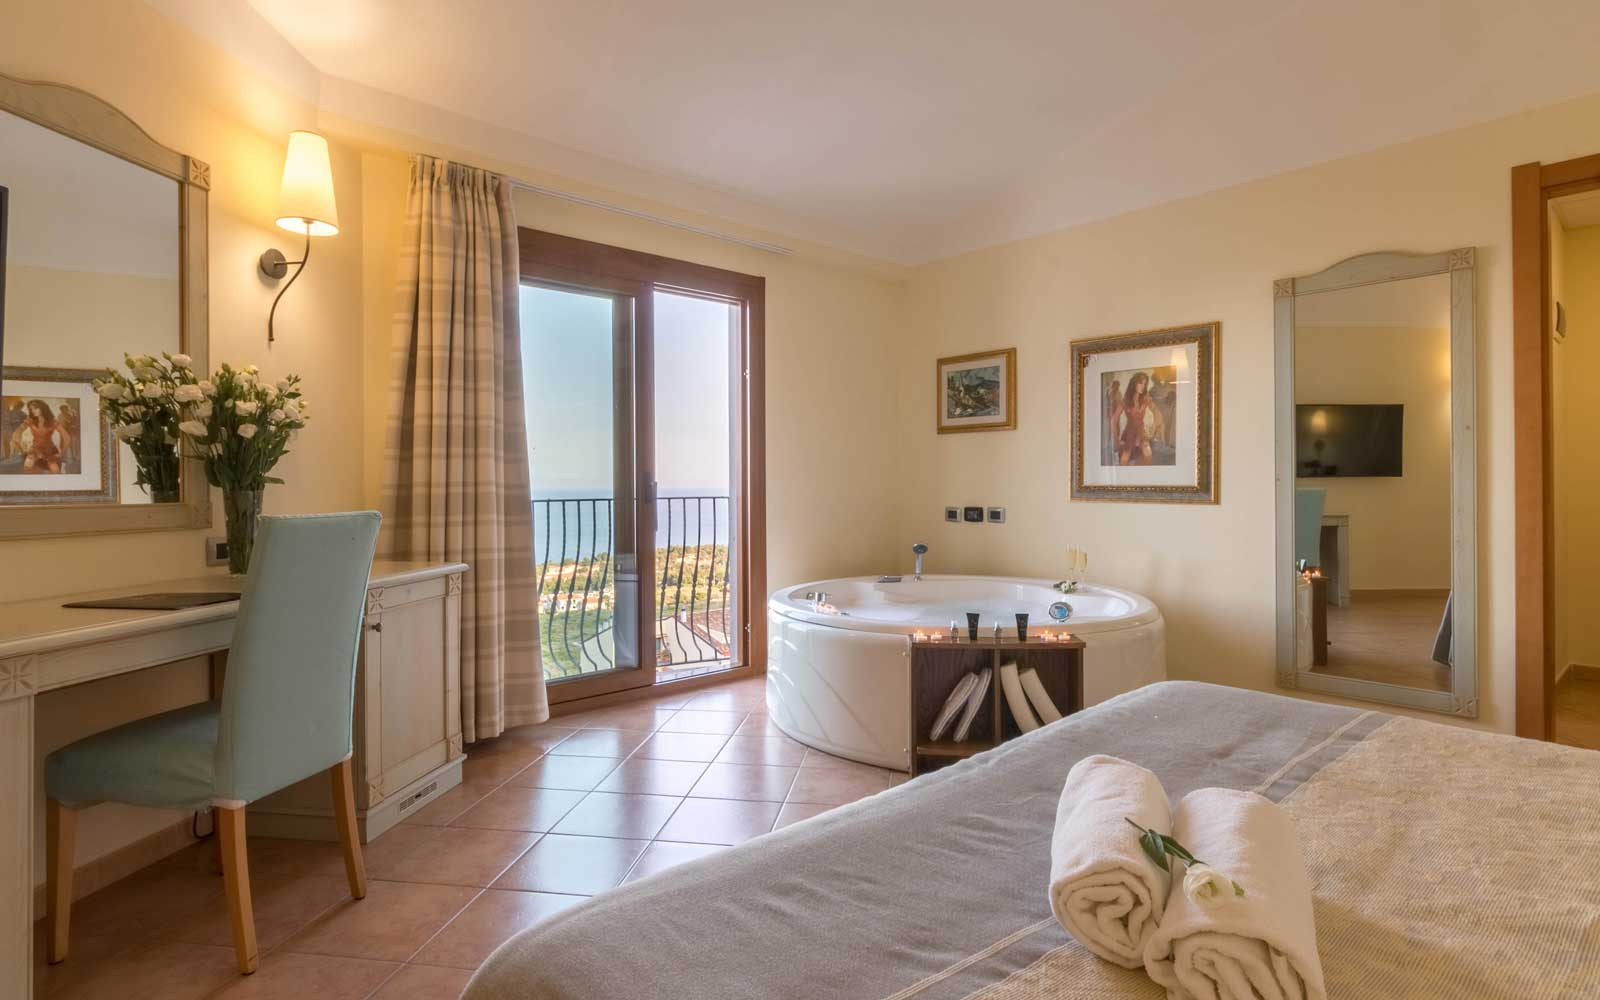 Grand Deluxe Room with Sea View at Hotel Brancamaria